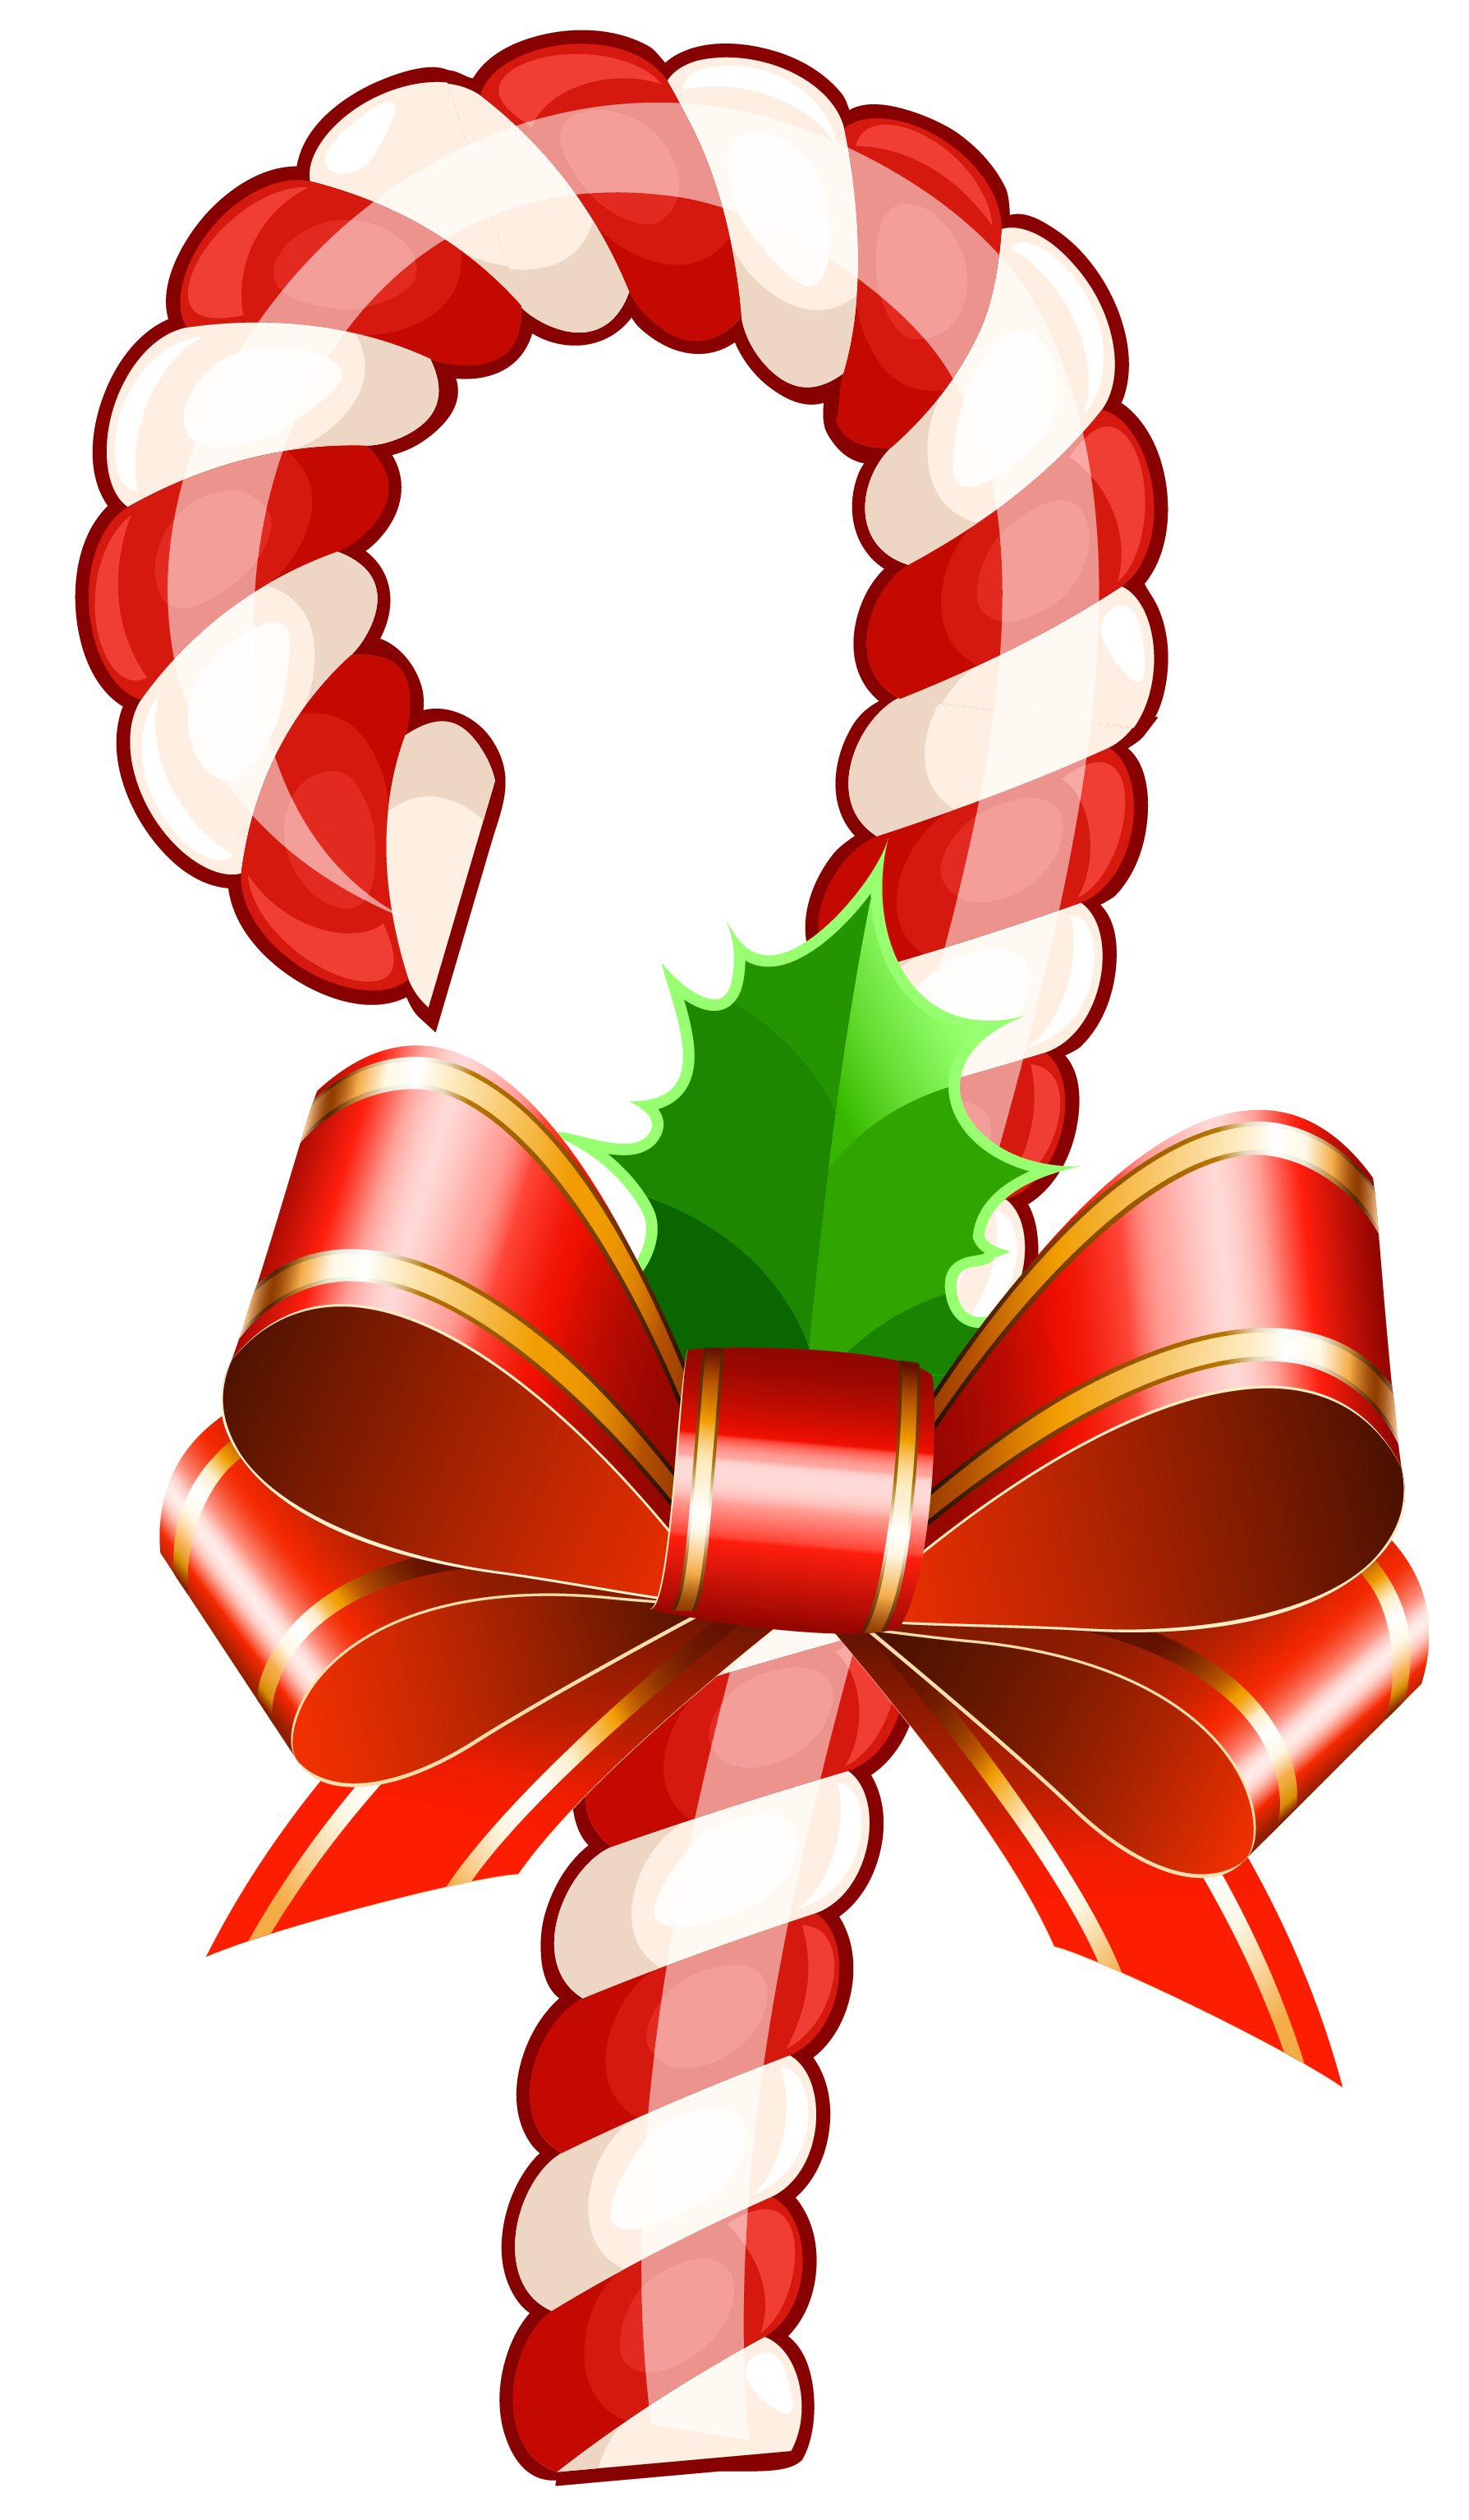 Candy cane clipart png. Large transparent christmas gallery